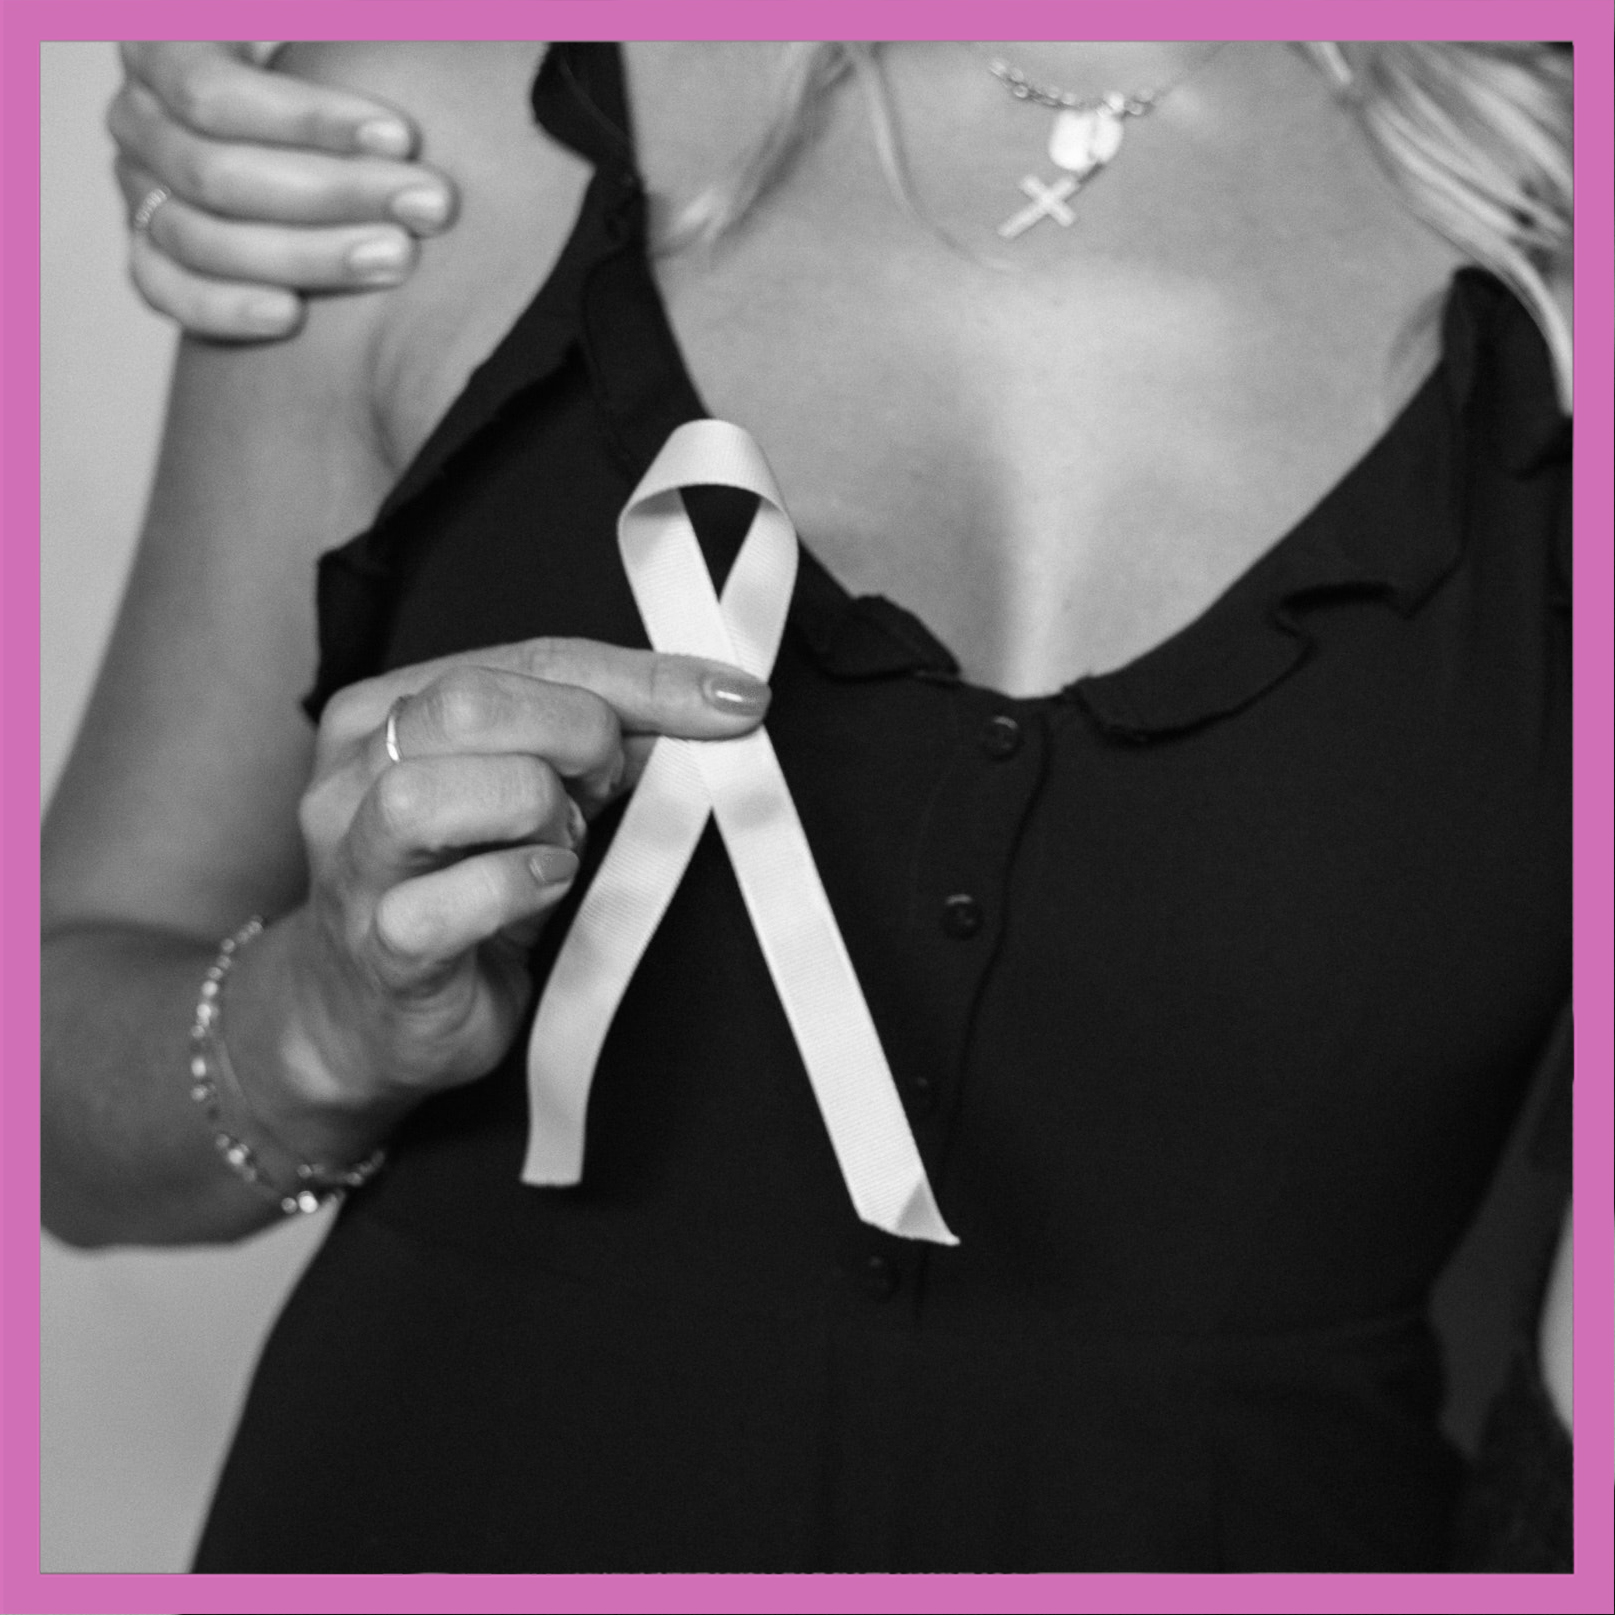 A woman's breasts with a pink breast cancer awareness ribbon over them